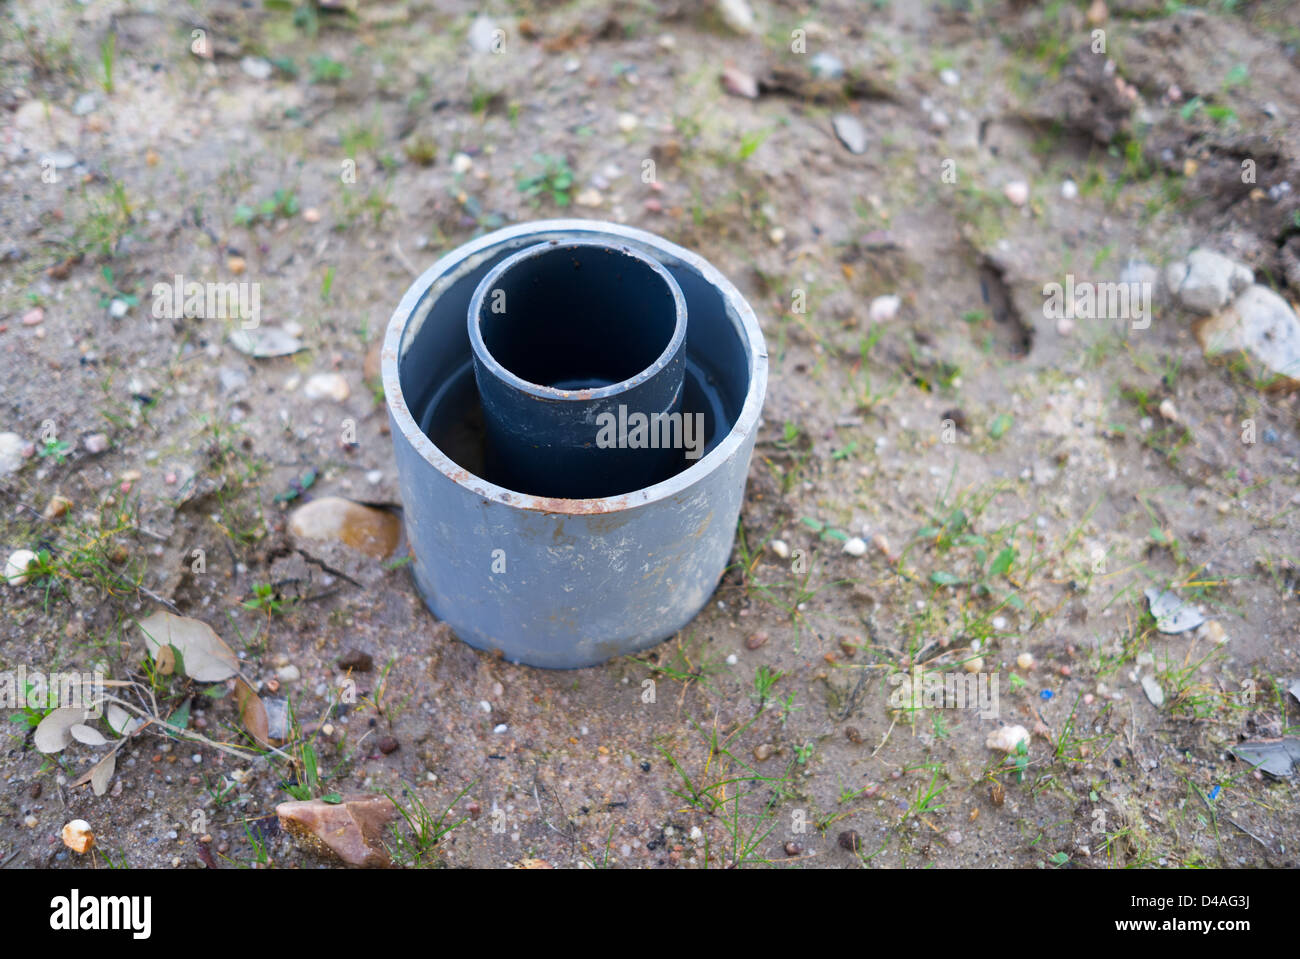 soil infiltration 7 3 infiltration test the infiltration test is generally performed after the first respiration measurement the same 6-inch diameter ring left in place from the soil respiration test can be used for the infiltration test.